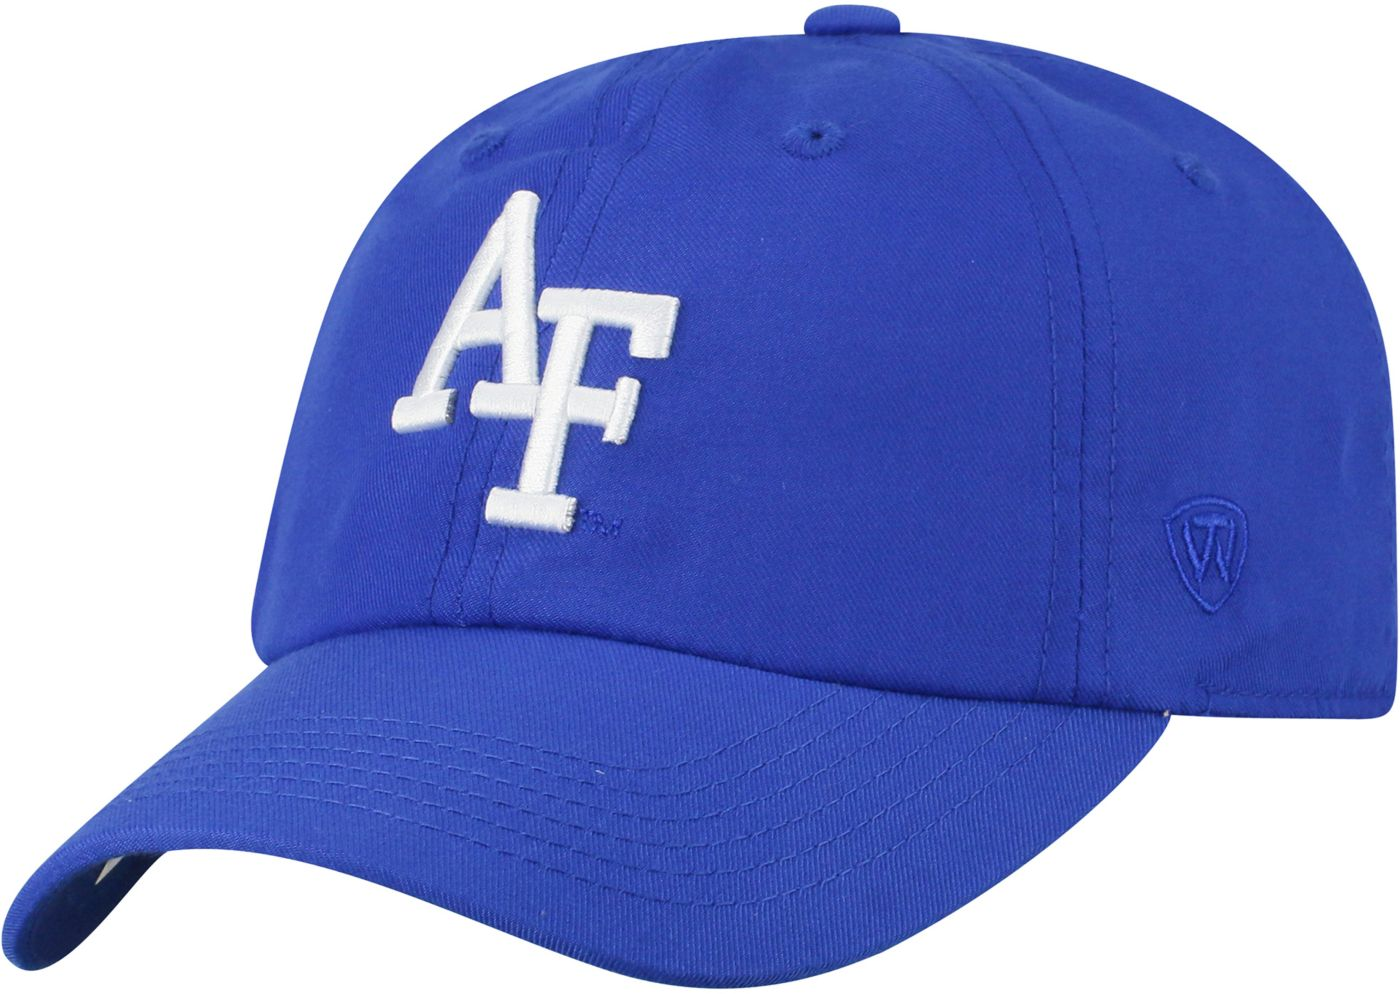 Top of the World Men's Air Force Falcons Blue Staple Adjustable Hat